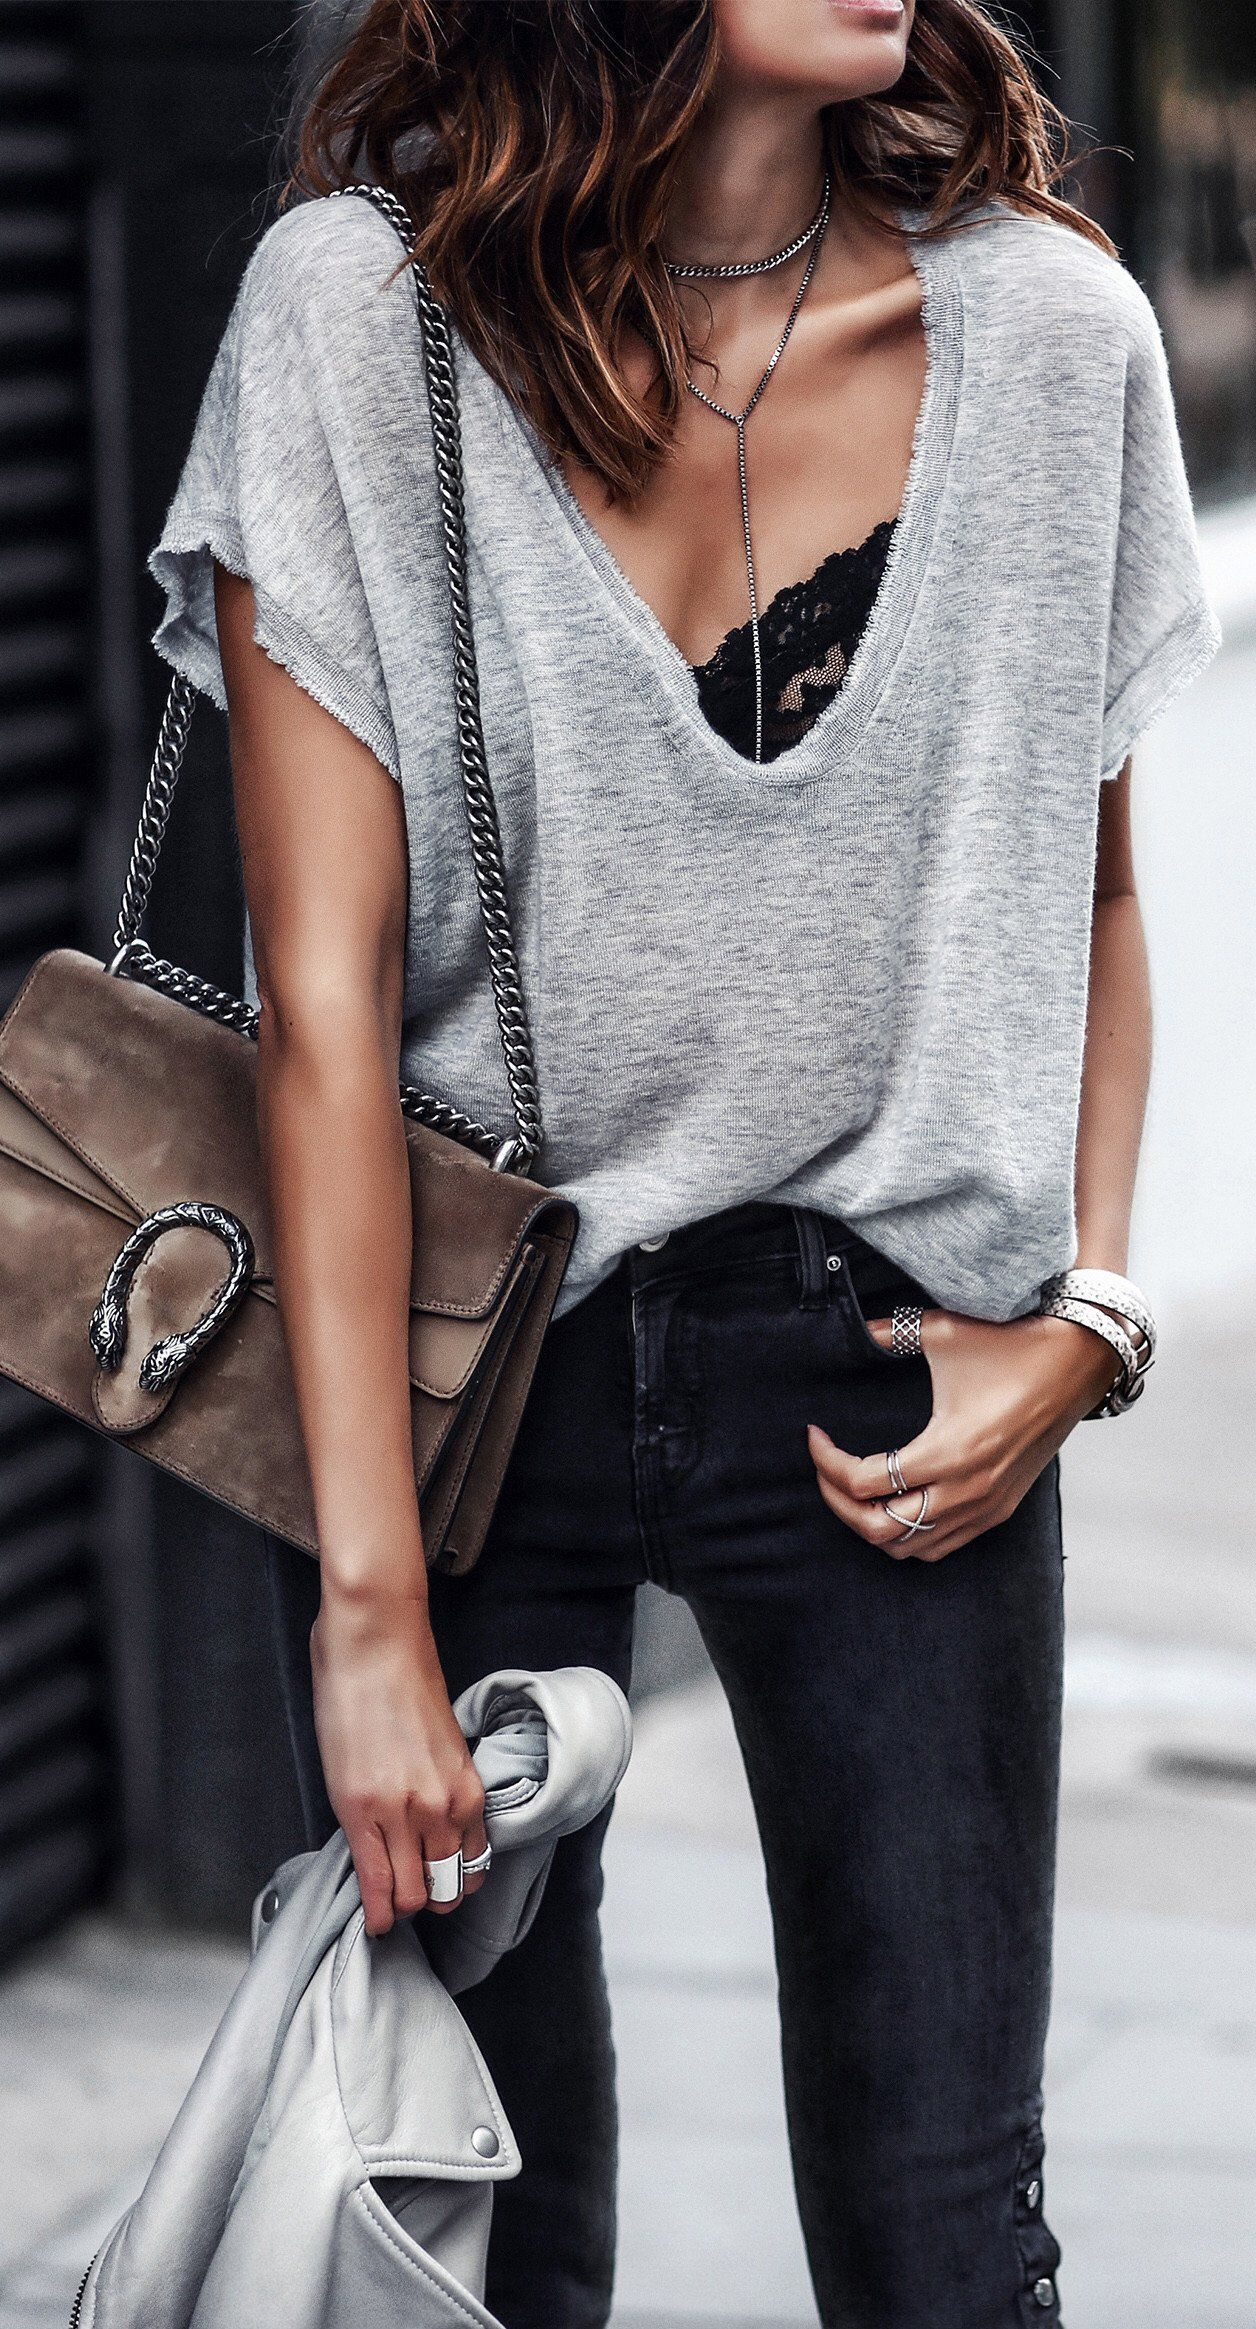 811f06f14a872 Casual Wear. Black Trousers. Hipster Fashion ·  fall  outfits   gray deep v  neck knit + bralette Outfit Jeans